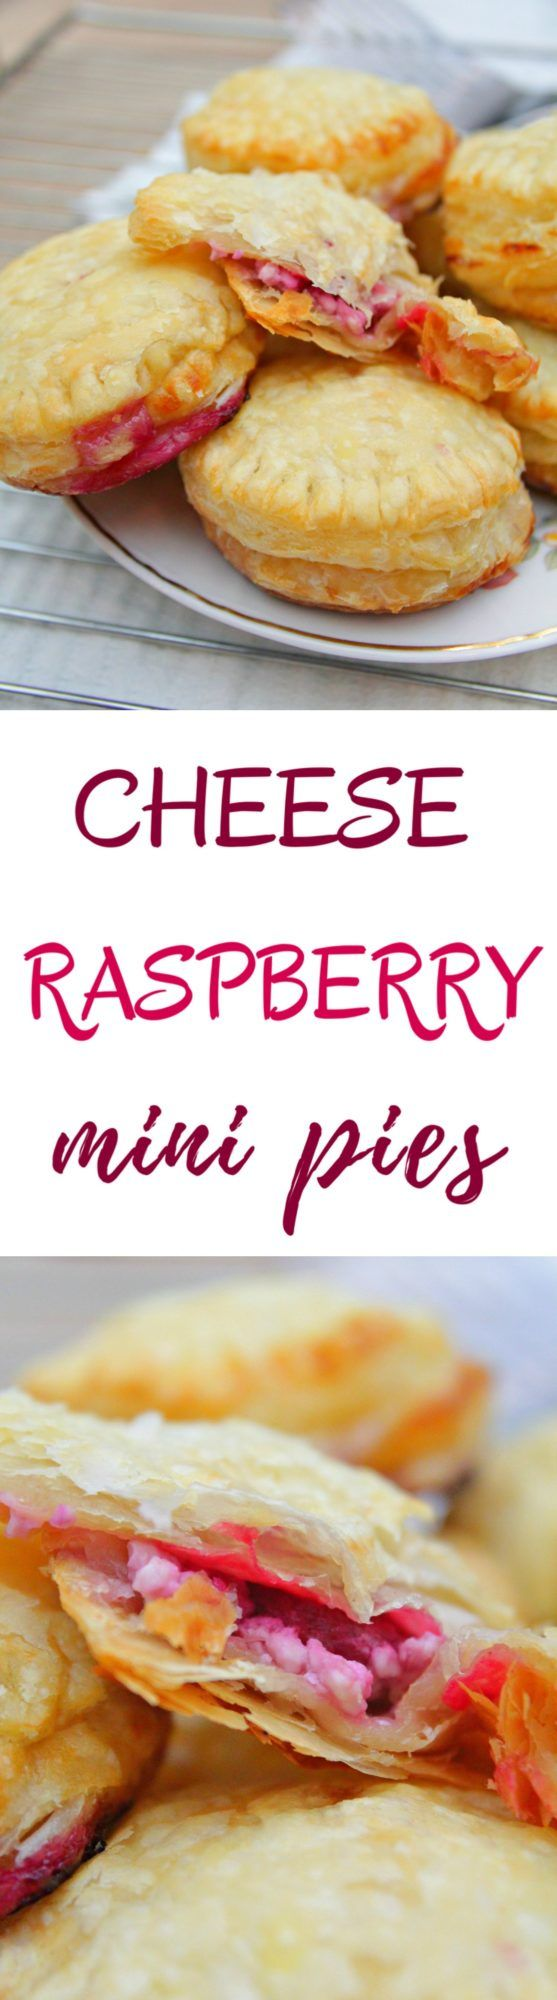 MINI RASPBERRY PIES - Need a last minute dessert or a quick fix for a sweet tooth? Make these brilliant mini raspberry pies with fresh cottage cheese in a snap!  #cheese #raspberry #raspberrydessert #PuffPastry #baking #pastry #pastrylove #desserts #desserttime #desserts #dessertsrecipes